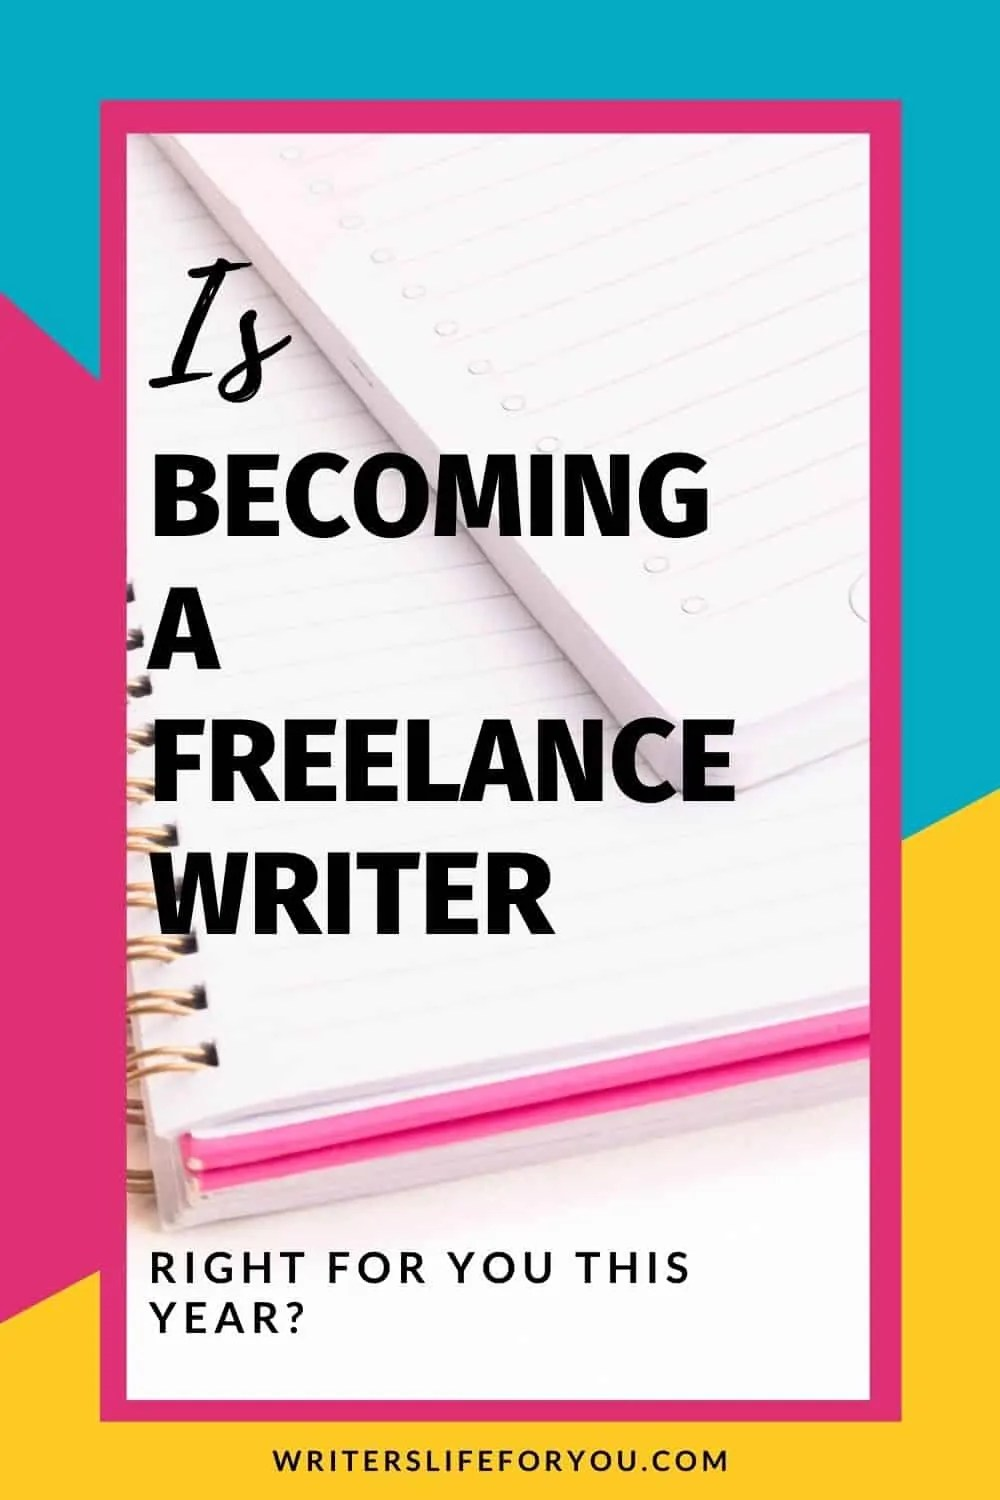 Is Becoming a Freelance Writer Right for You This Year (2021)?